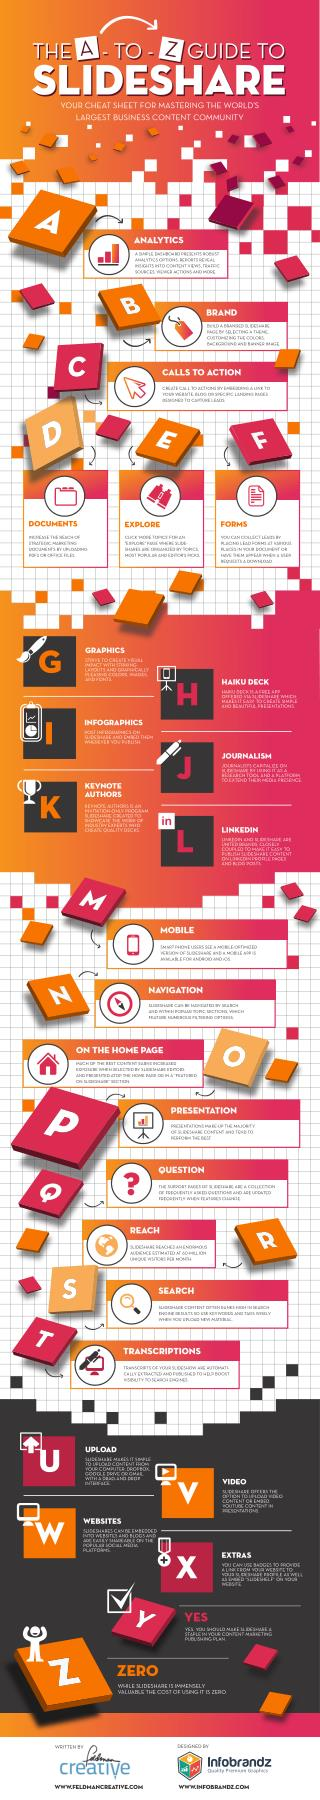 Mastering SlideShare: The A-to-Z Guide